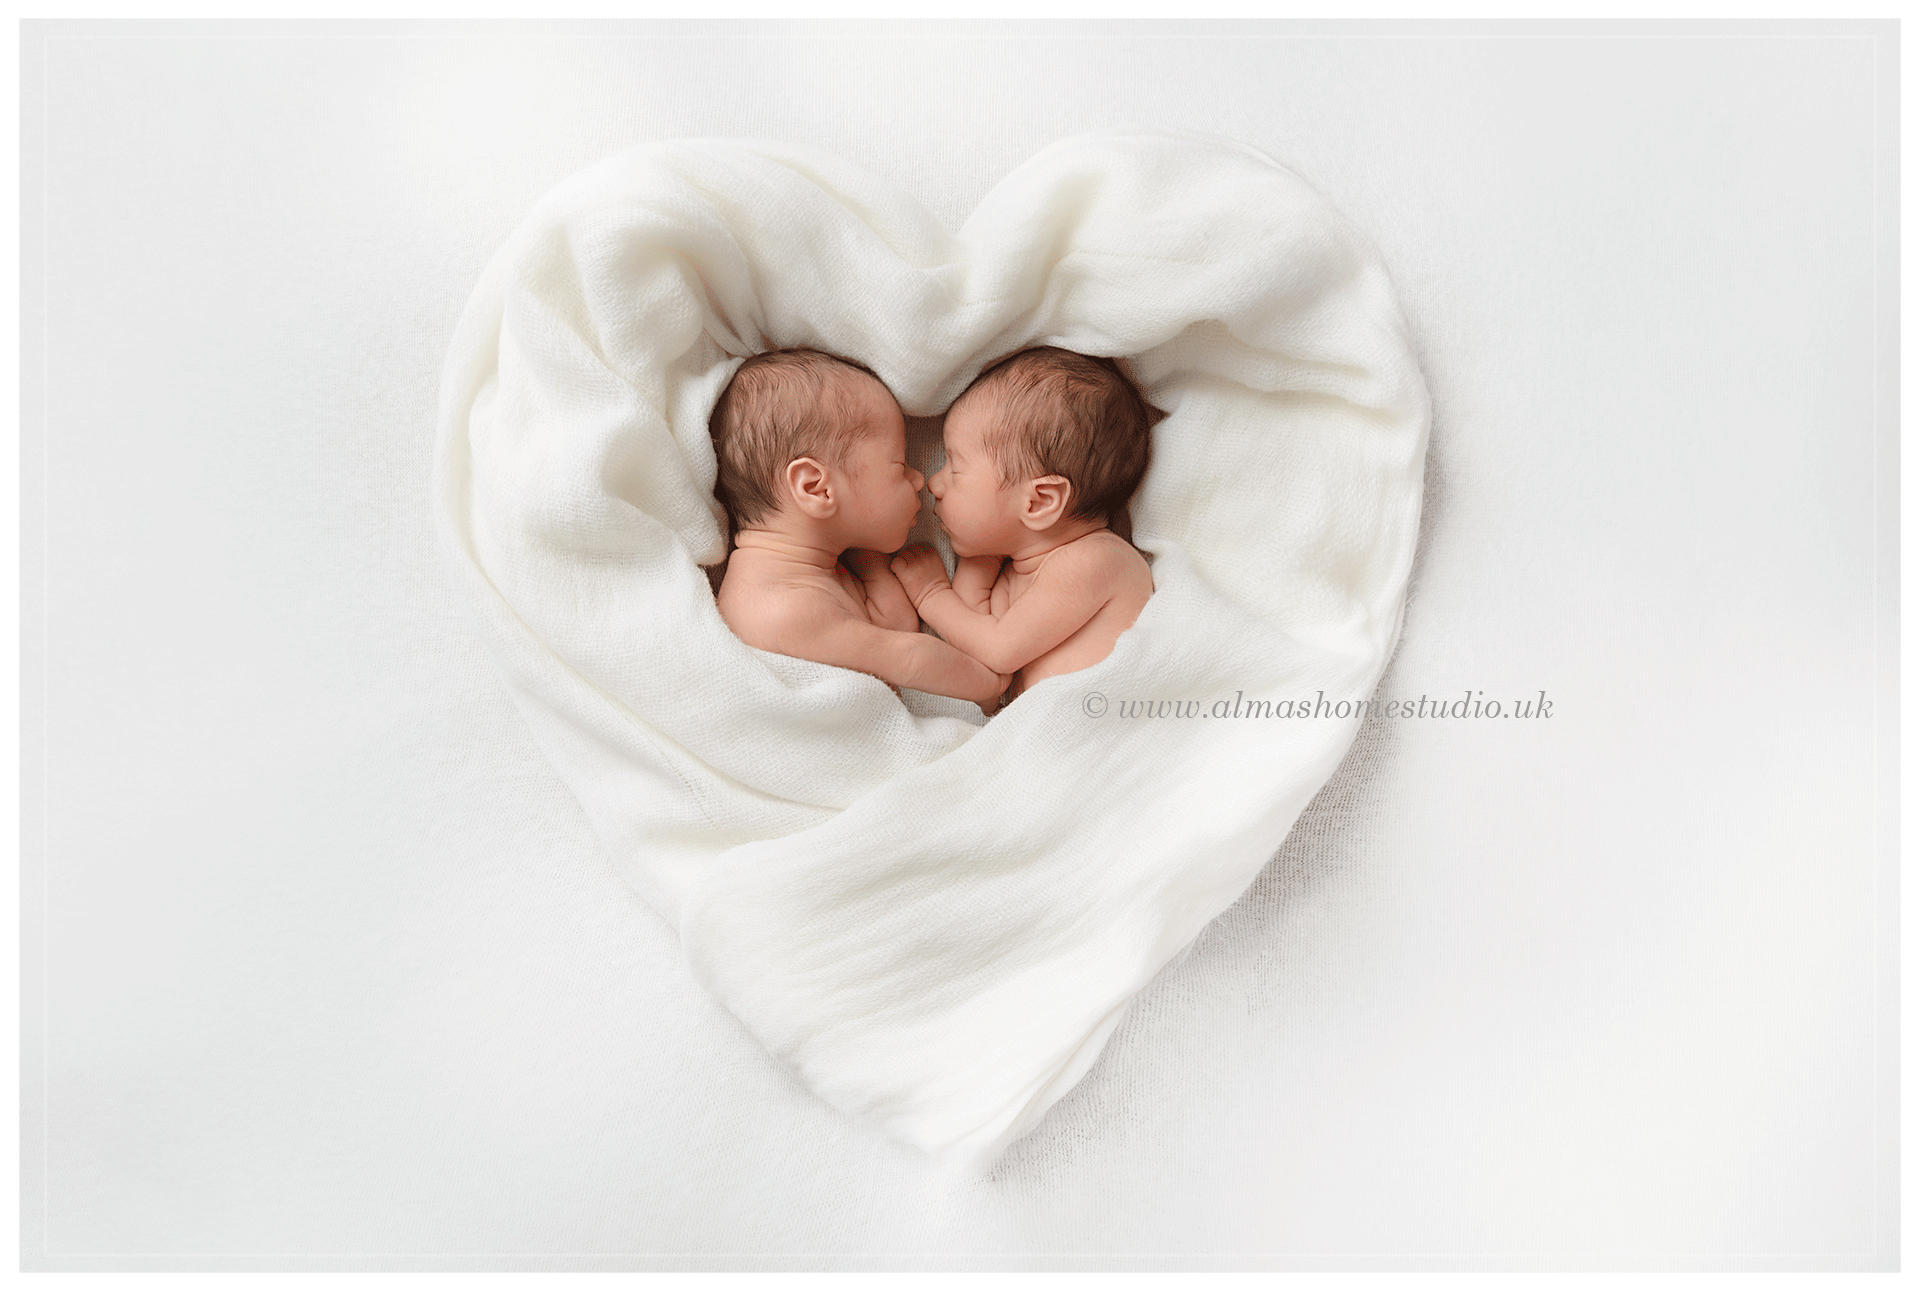 Alma's Home Studio - Specialist Newborn photographer in Dorset